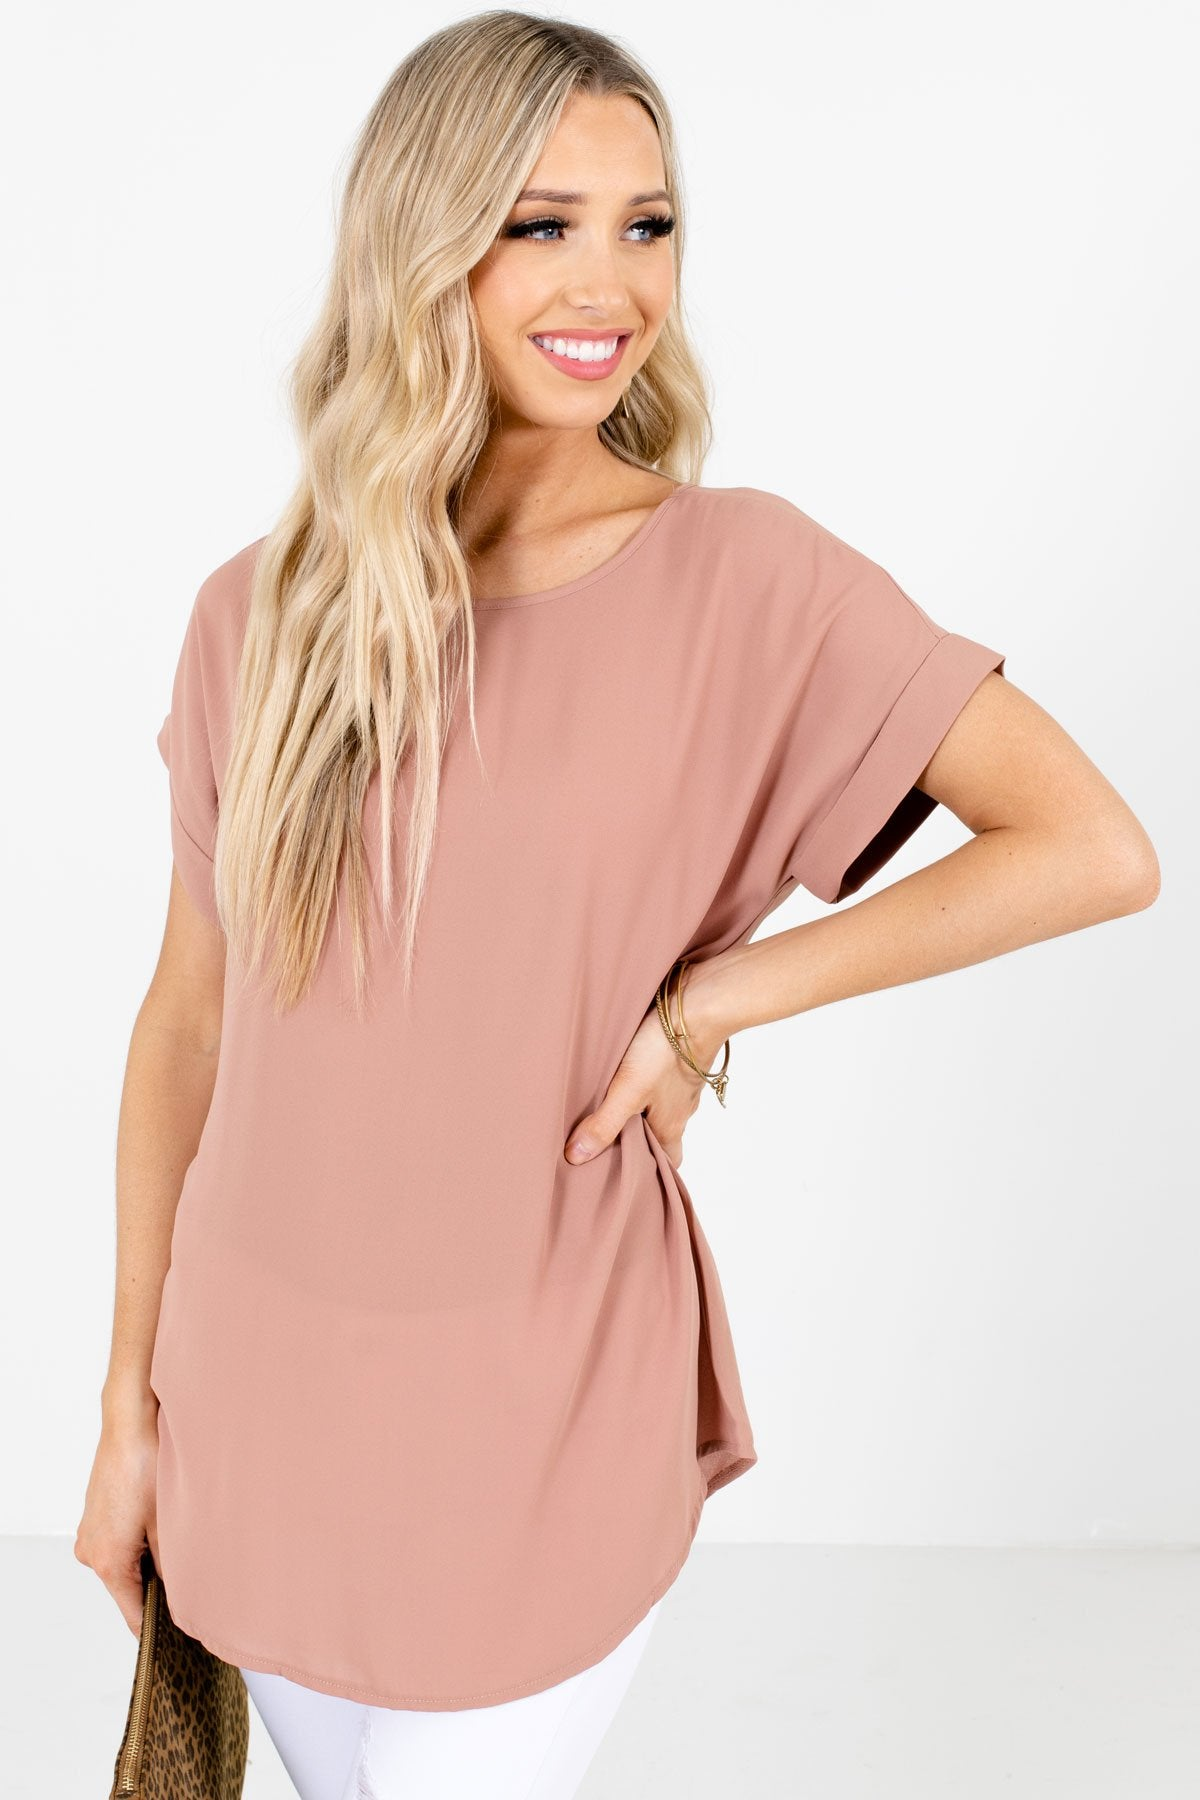 Tan Brown Lightweight and Flowy Boutique Blouses for Women